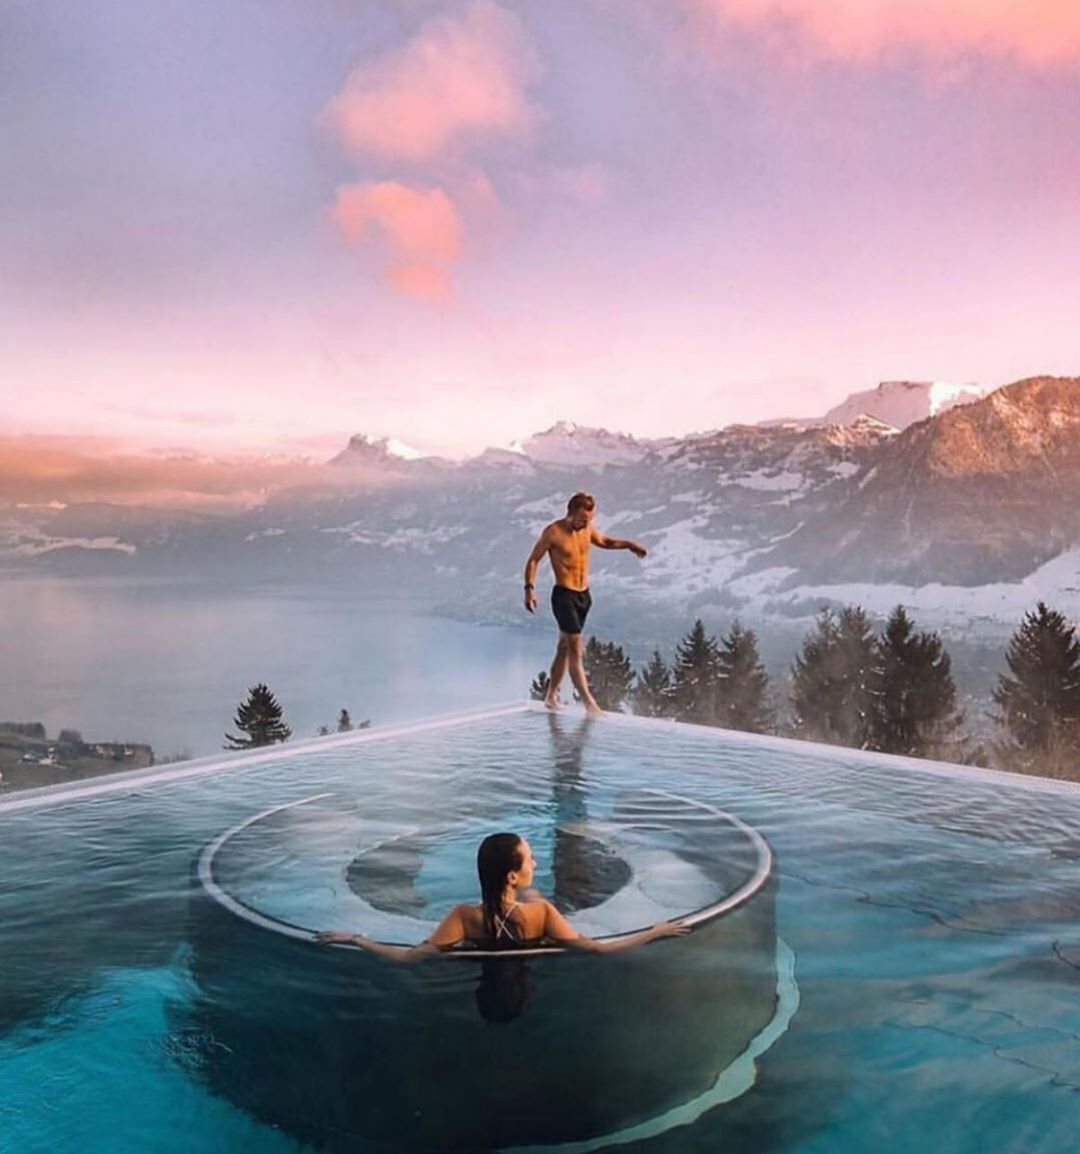 Best Hotel In Switzerland With Infinity Pool Visit Hotel Villa Honegg Switzerland Planning A Trip Check Out Explorsi We Match You With A Personalize In 2020 Switzerland Hotels Hotel Villa Honegg Destin Hotels